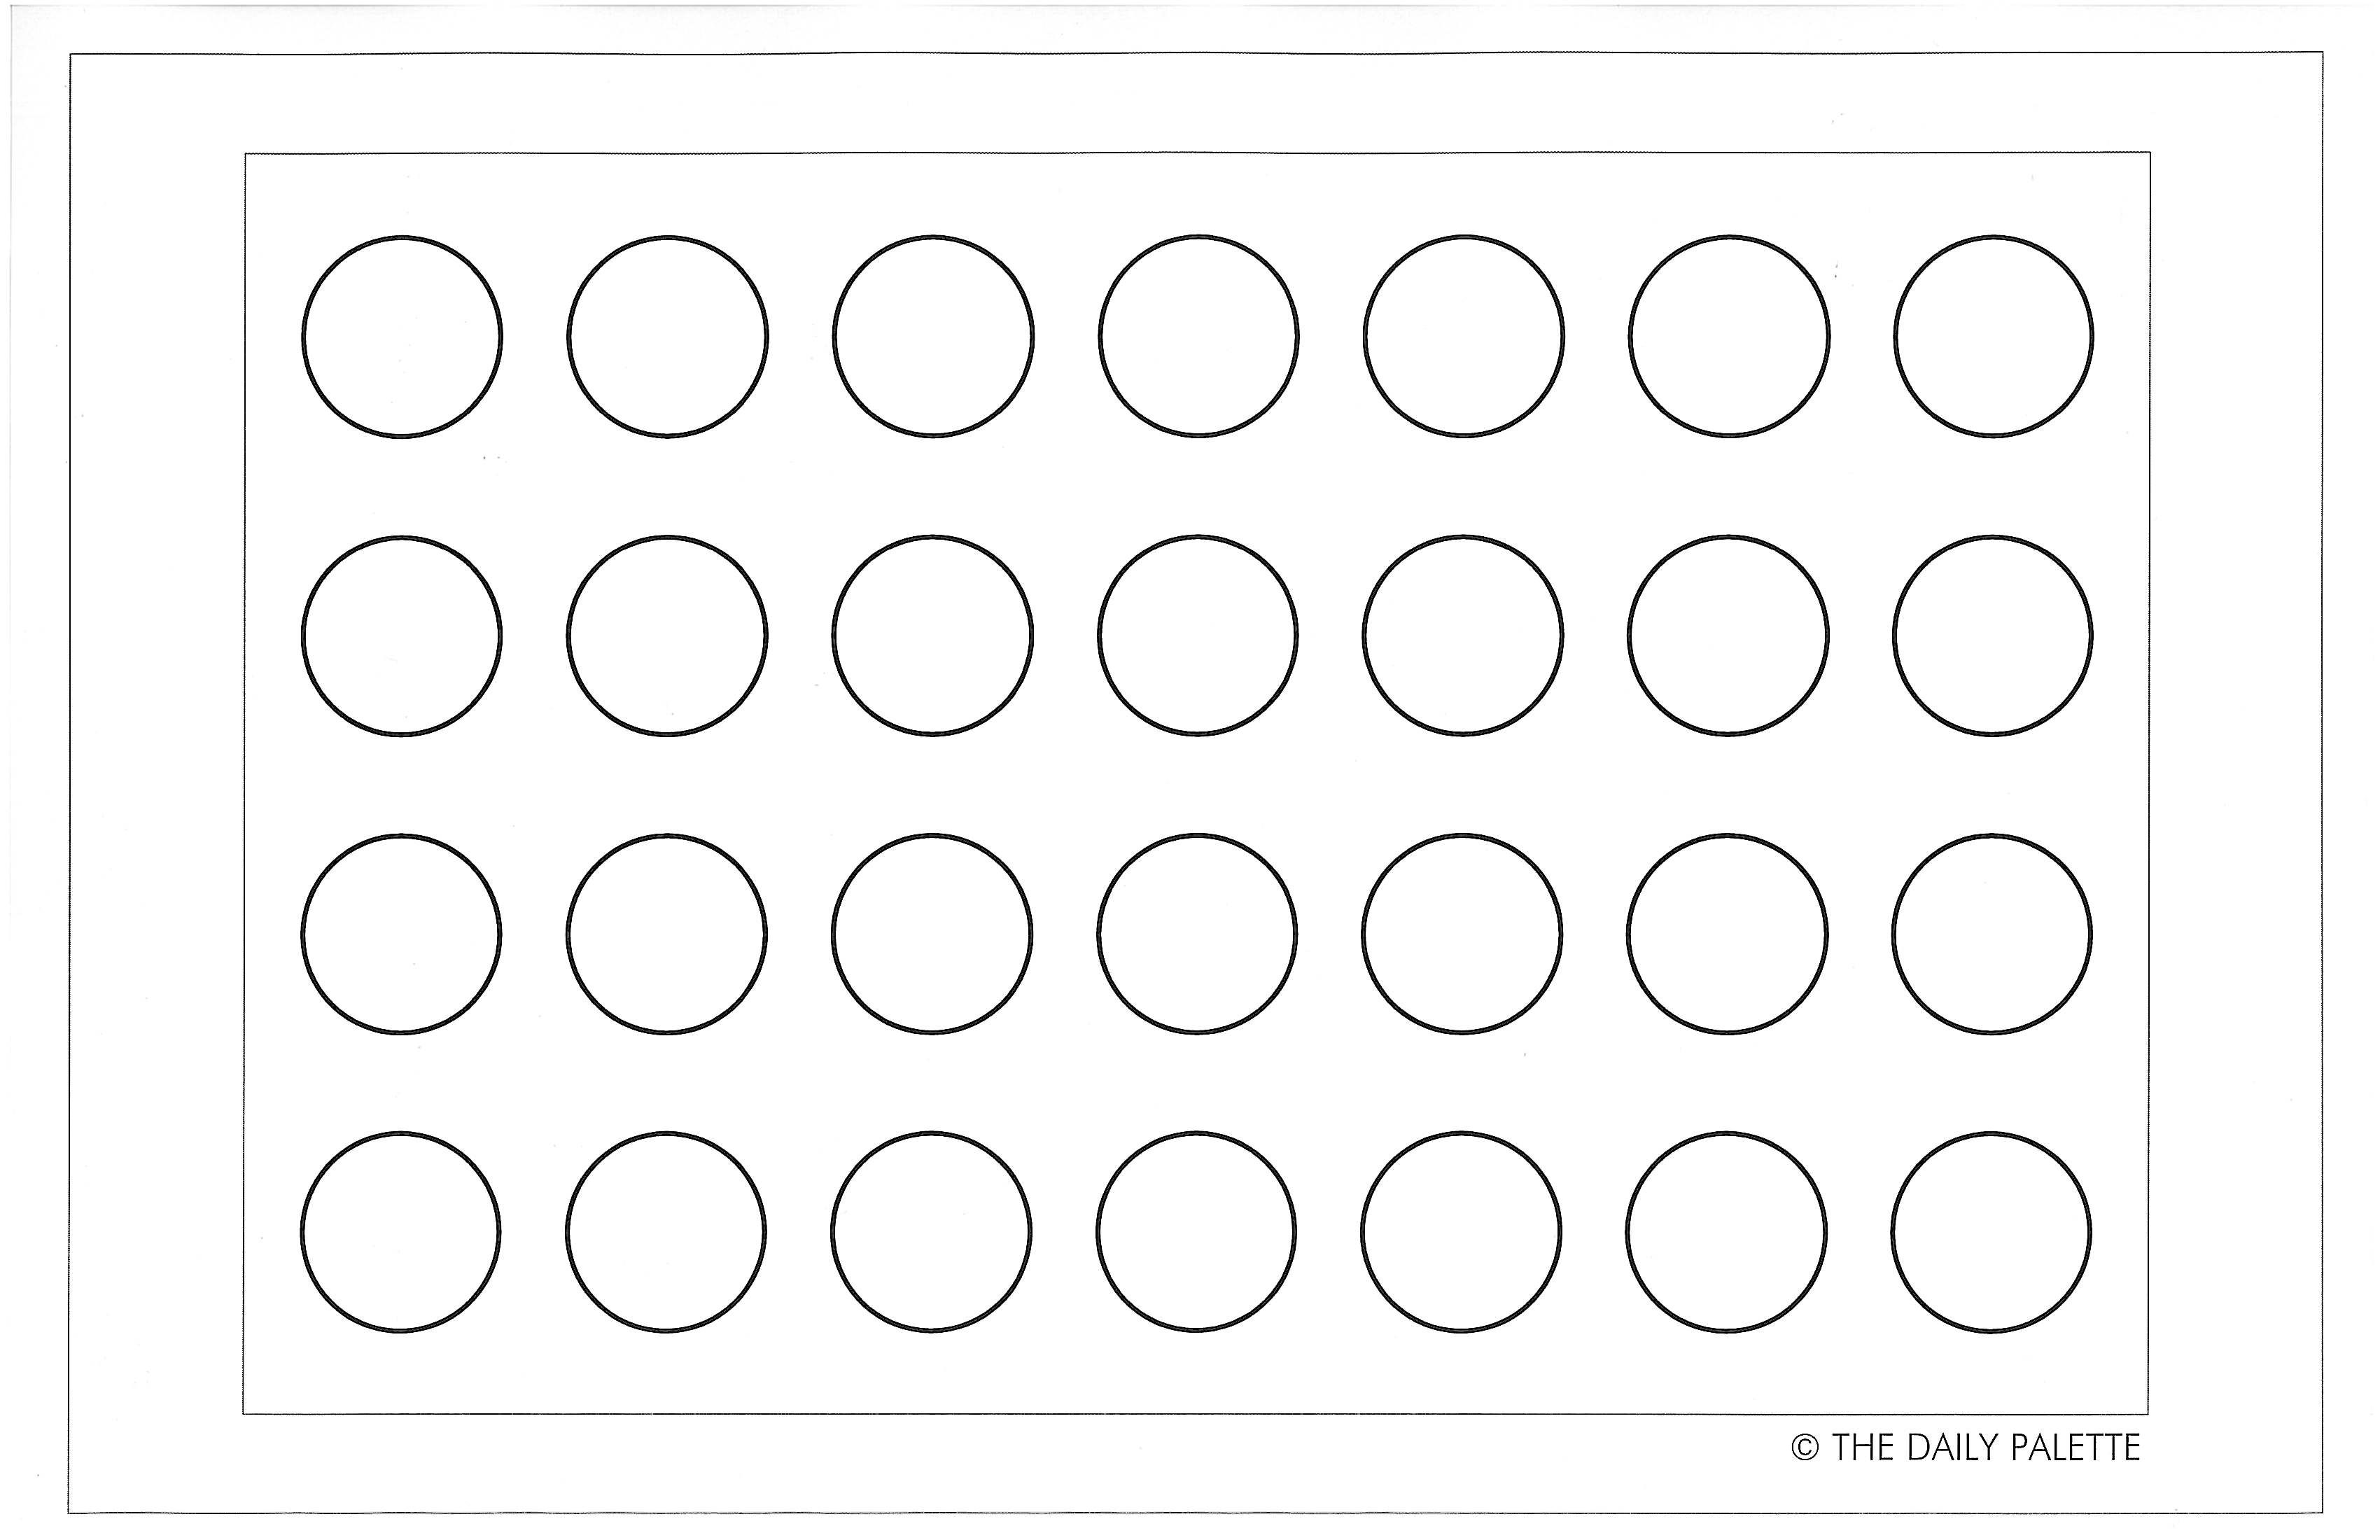 Macaron Templates To Print Off  Maybe I Can Toss My Tired Old